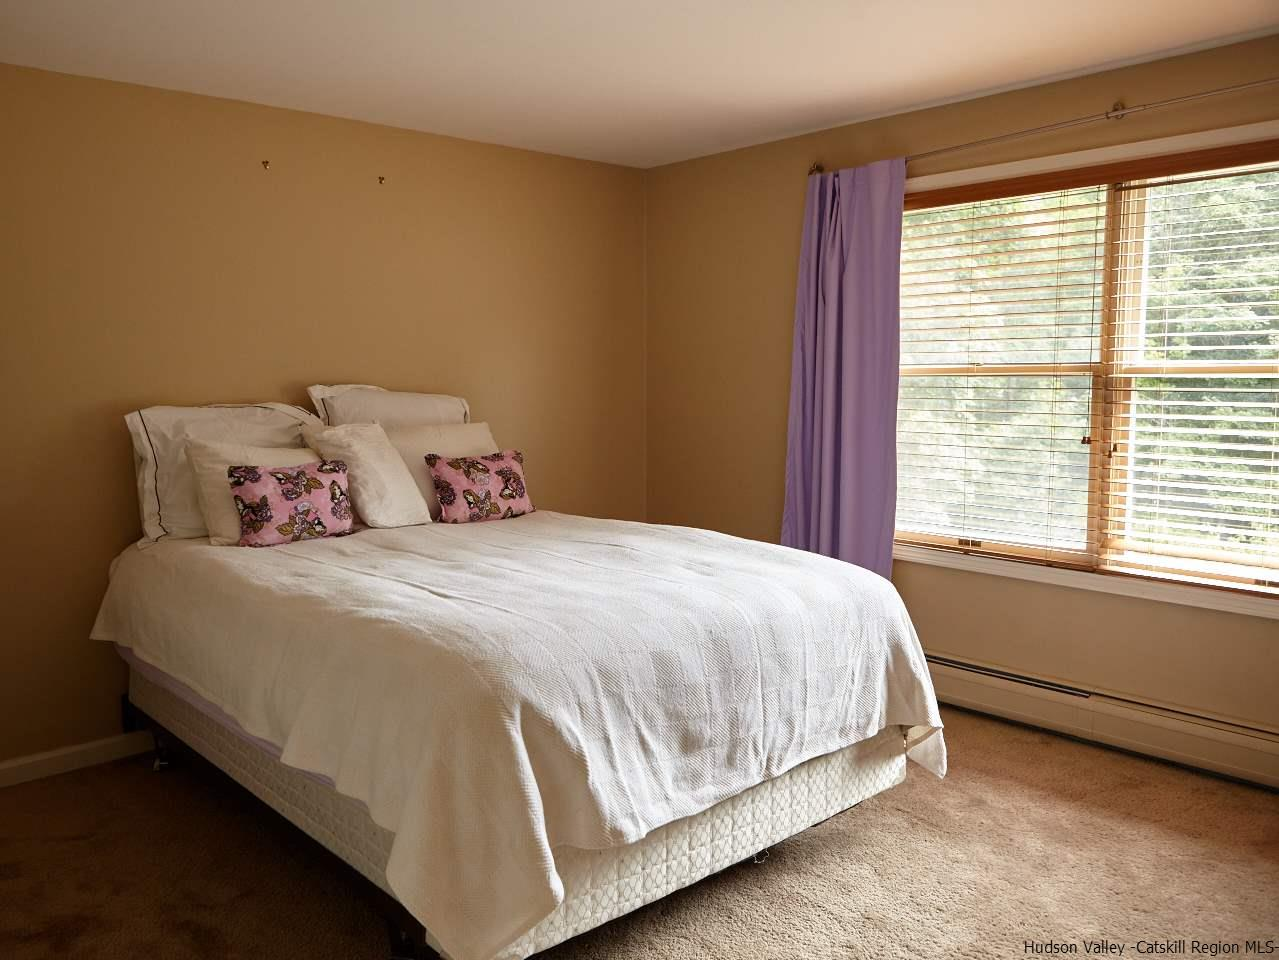 Additional photo for property listing at 1300 Old Post Road 1300 Old Post Road Ulster Park, New York 12487 United States